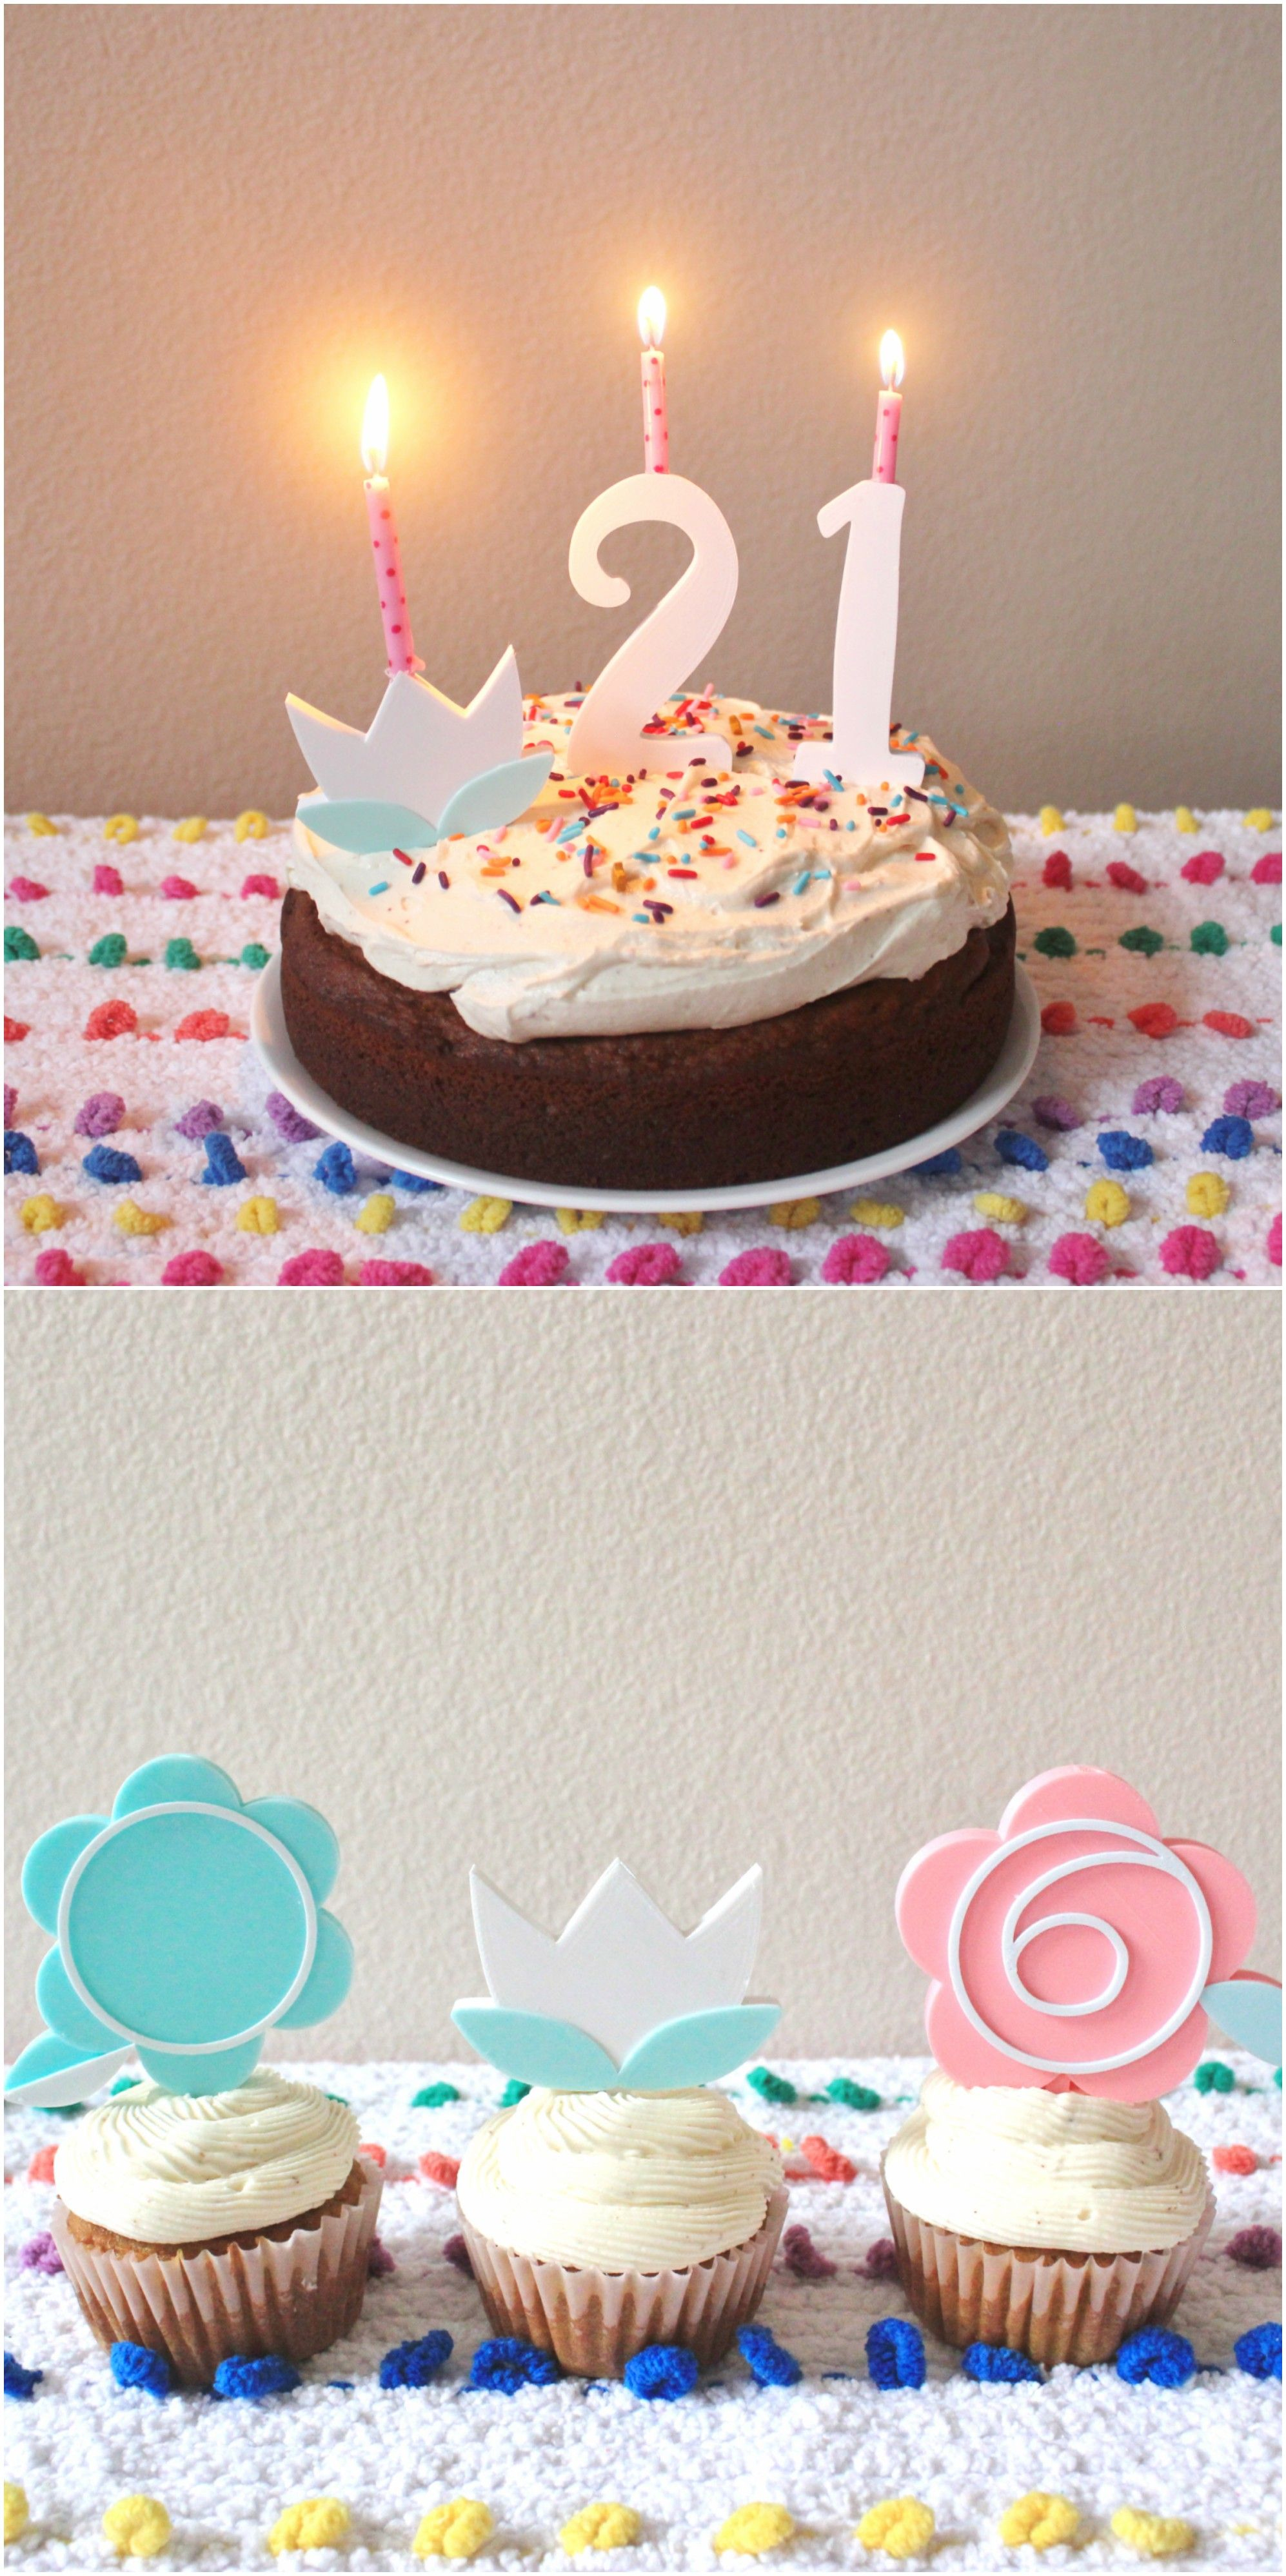 Amazing Cake Toppers Combine Flower With The Age Number 0 9 These Birthday Hold Standard Candles